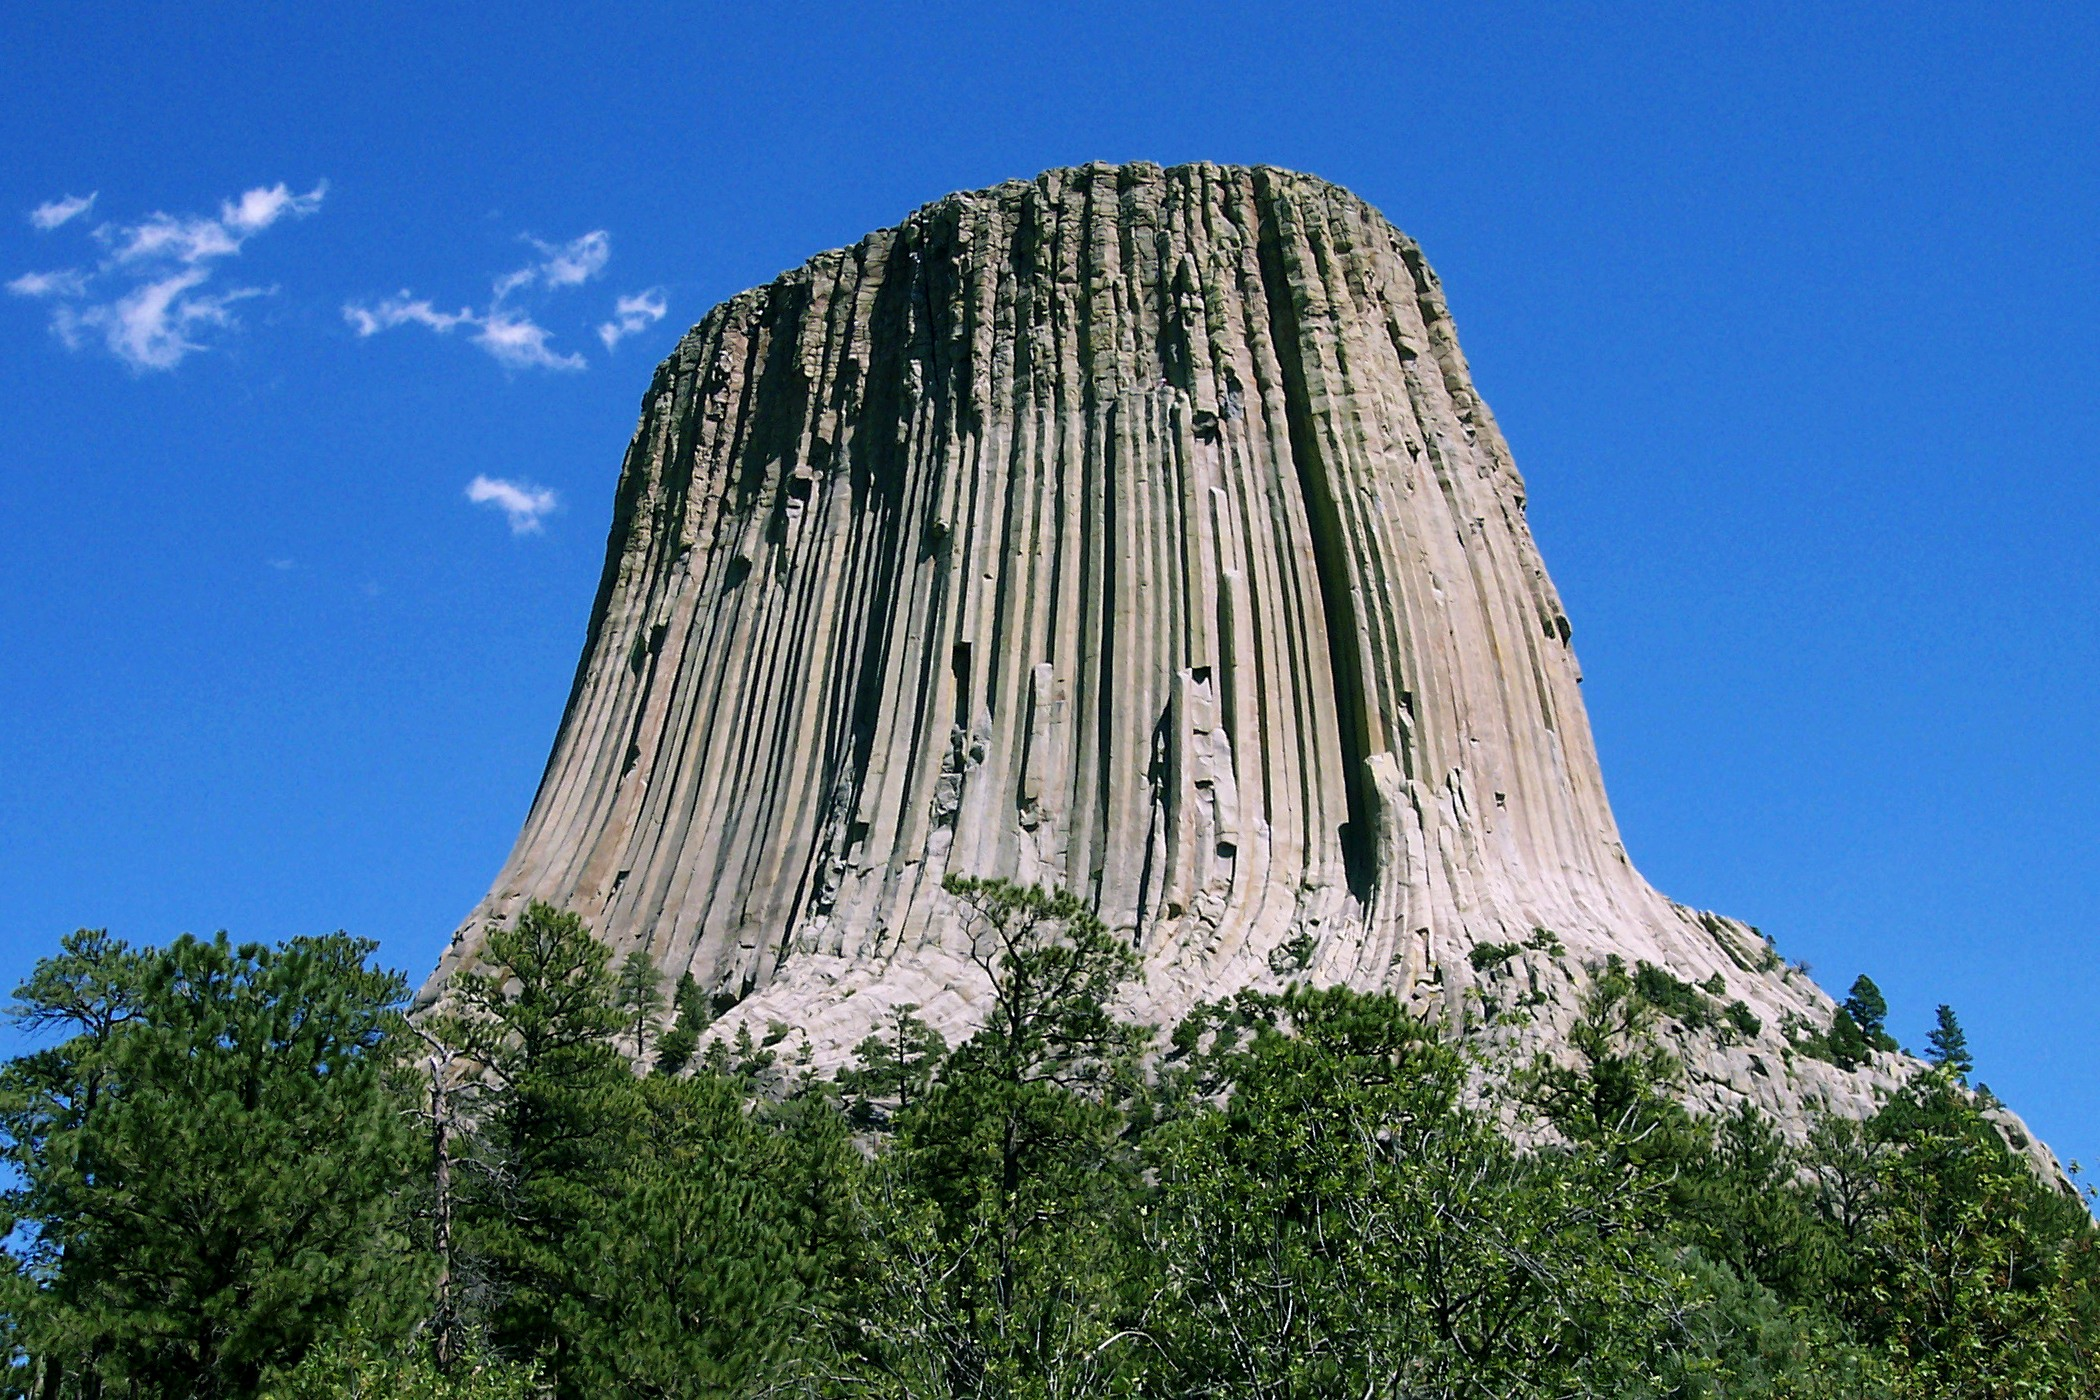 https://i0.wp.com/upload.wikimedia.org/wikipedia/commons/4/46/Devils_Tower_CROP.jpg